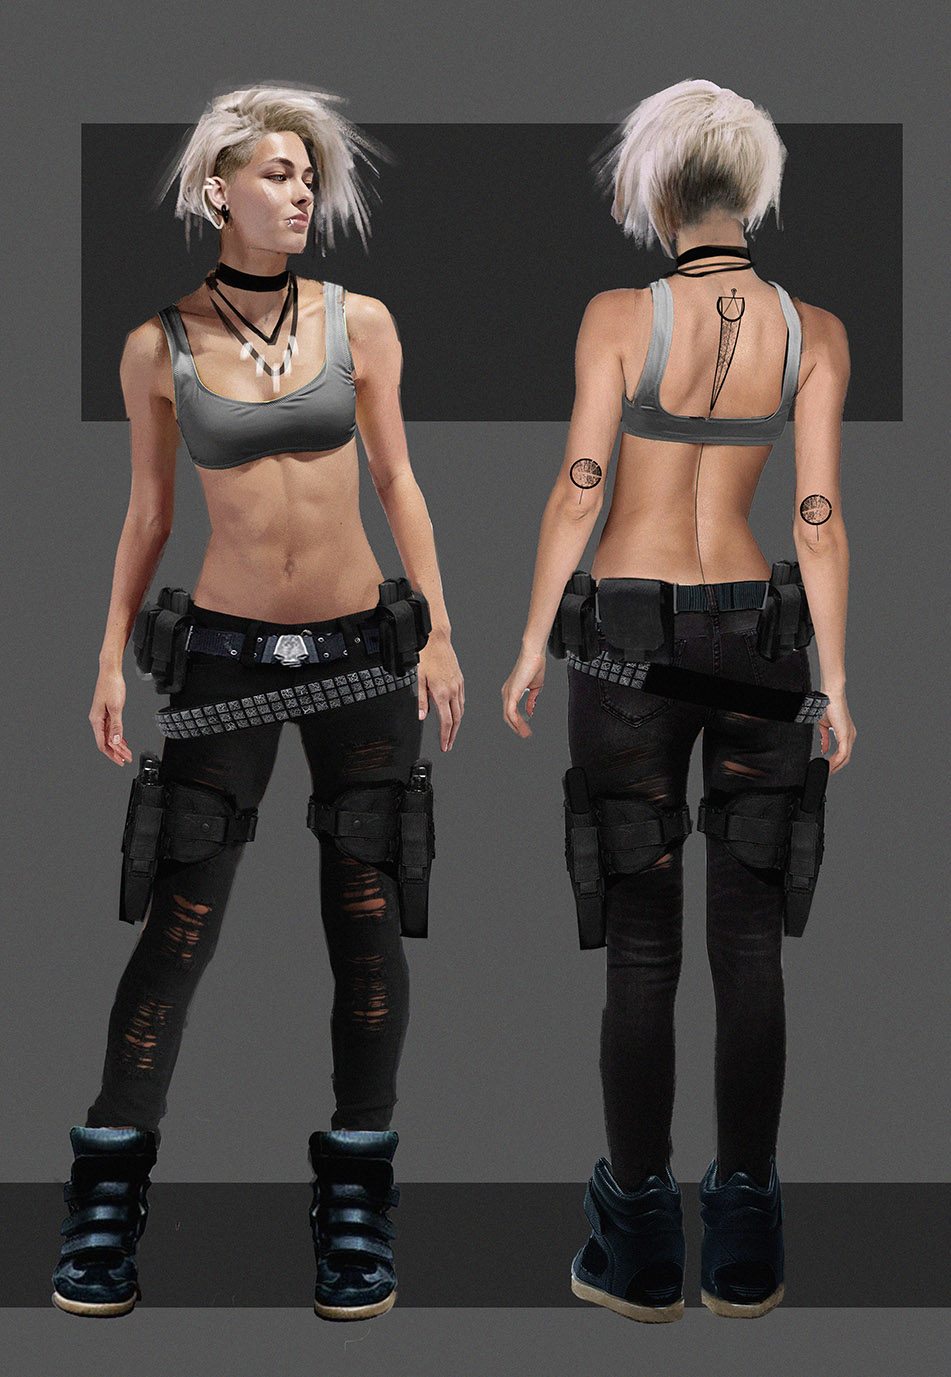 Fc88 character design 1 18984c0a dral